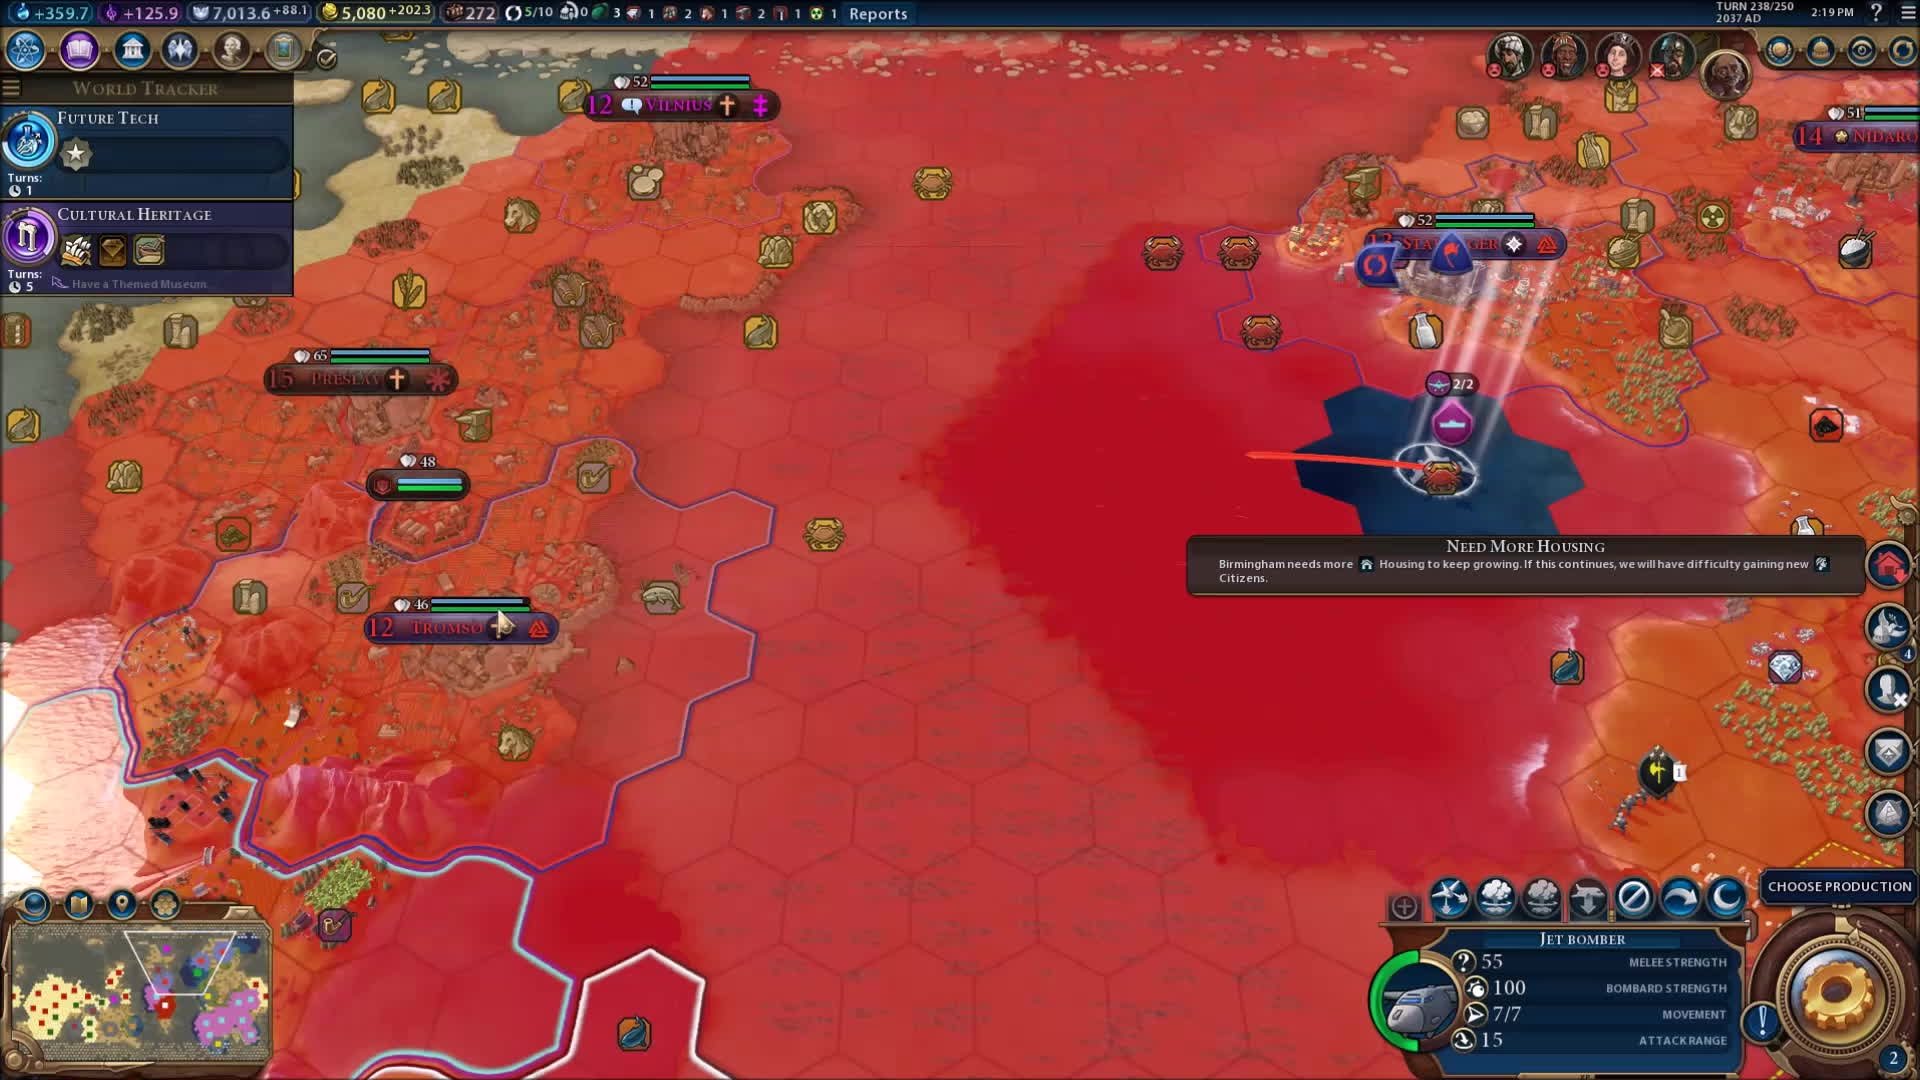 Civ, Norway doesn't want to be nuked GIFs